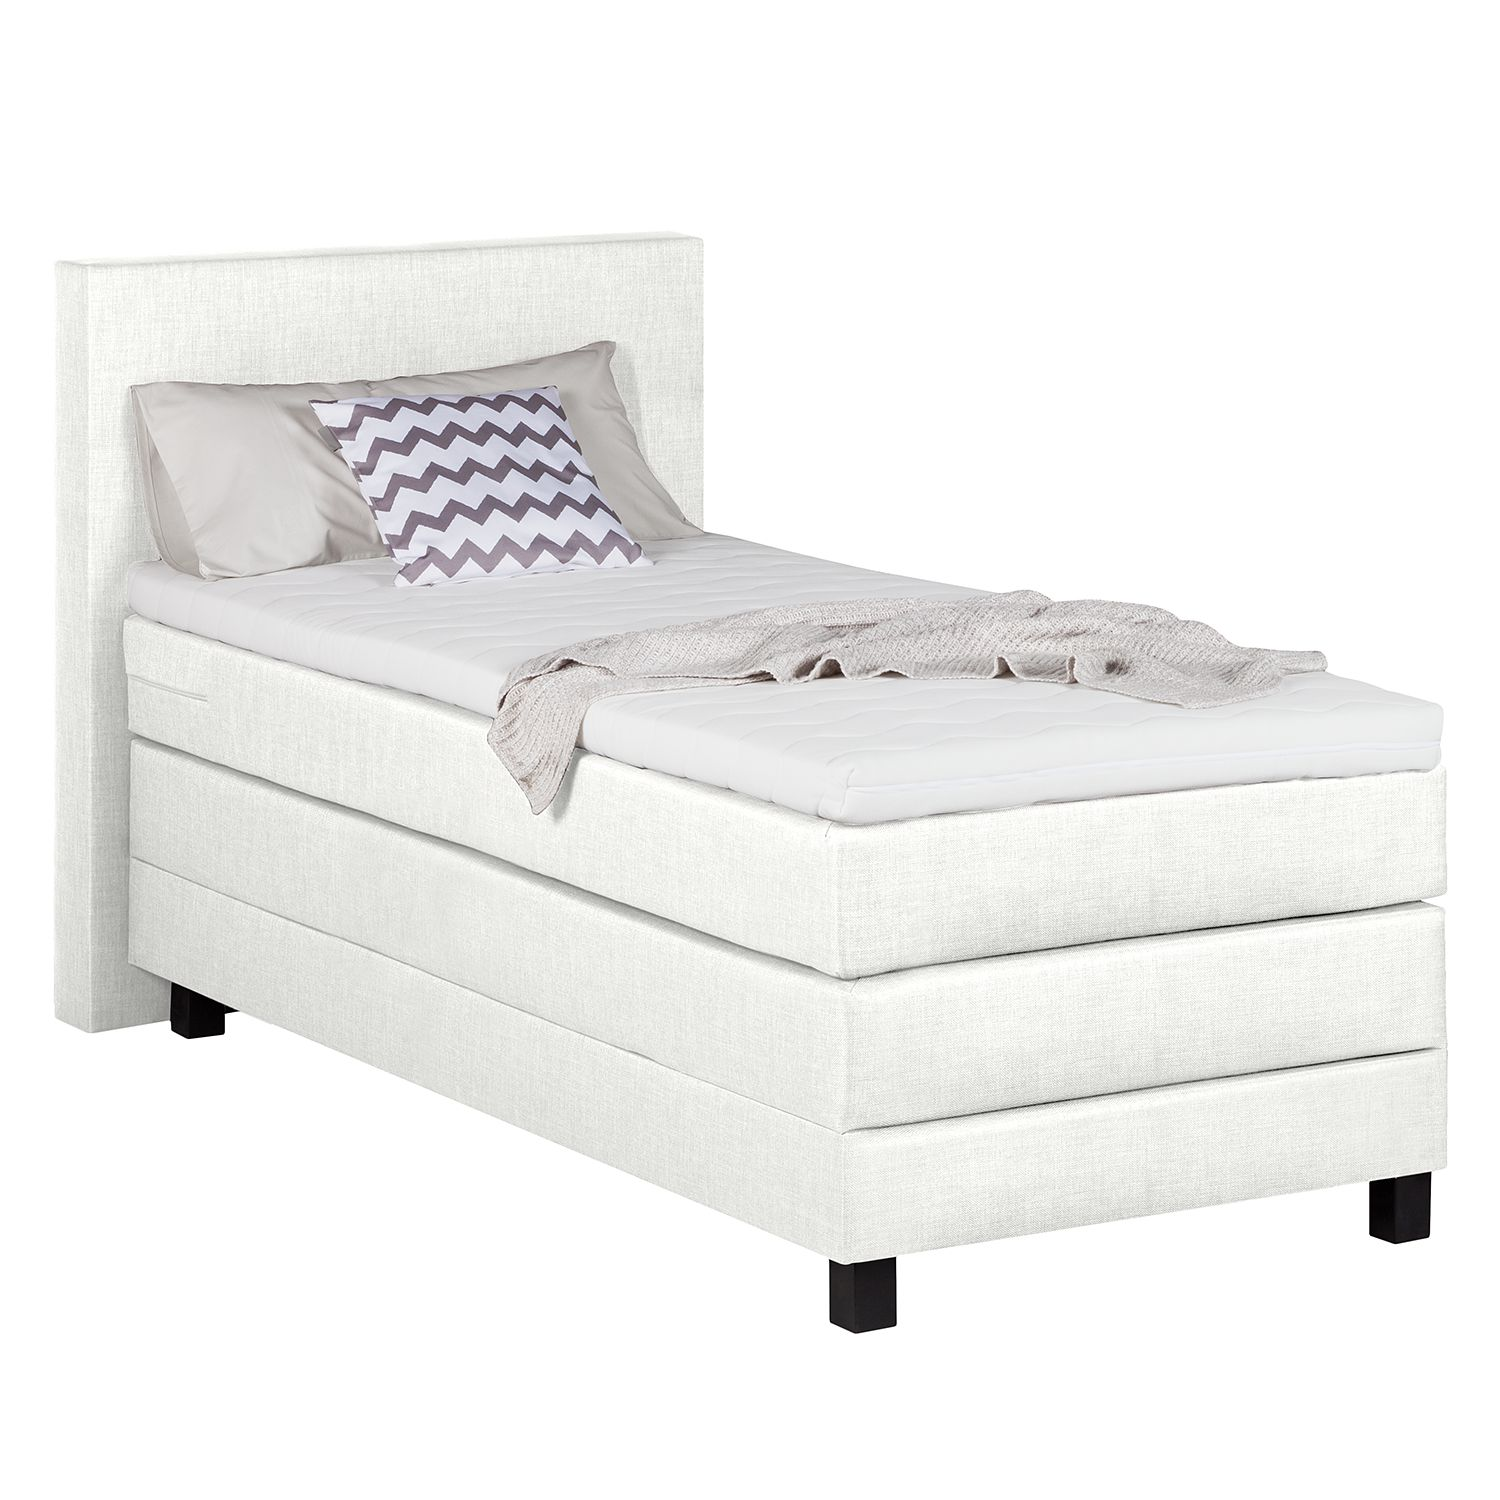 Boxspringbett Splendid Night II - 100 x 200cm - H3 ab 80 kg - Weiß, Grand Selection